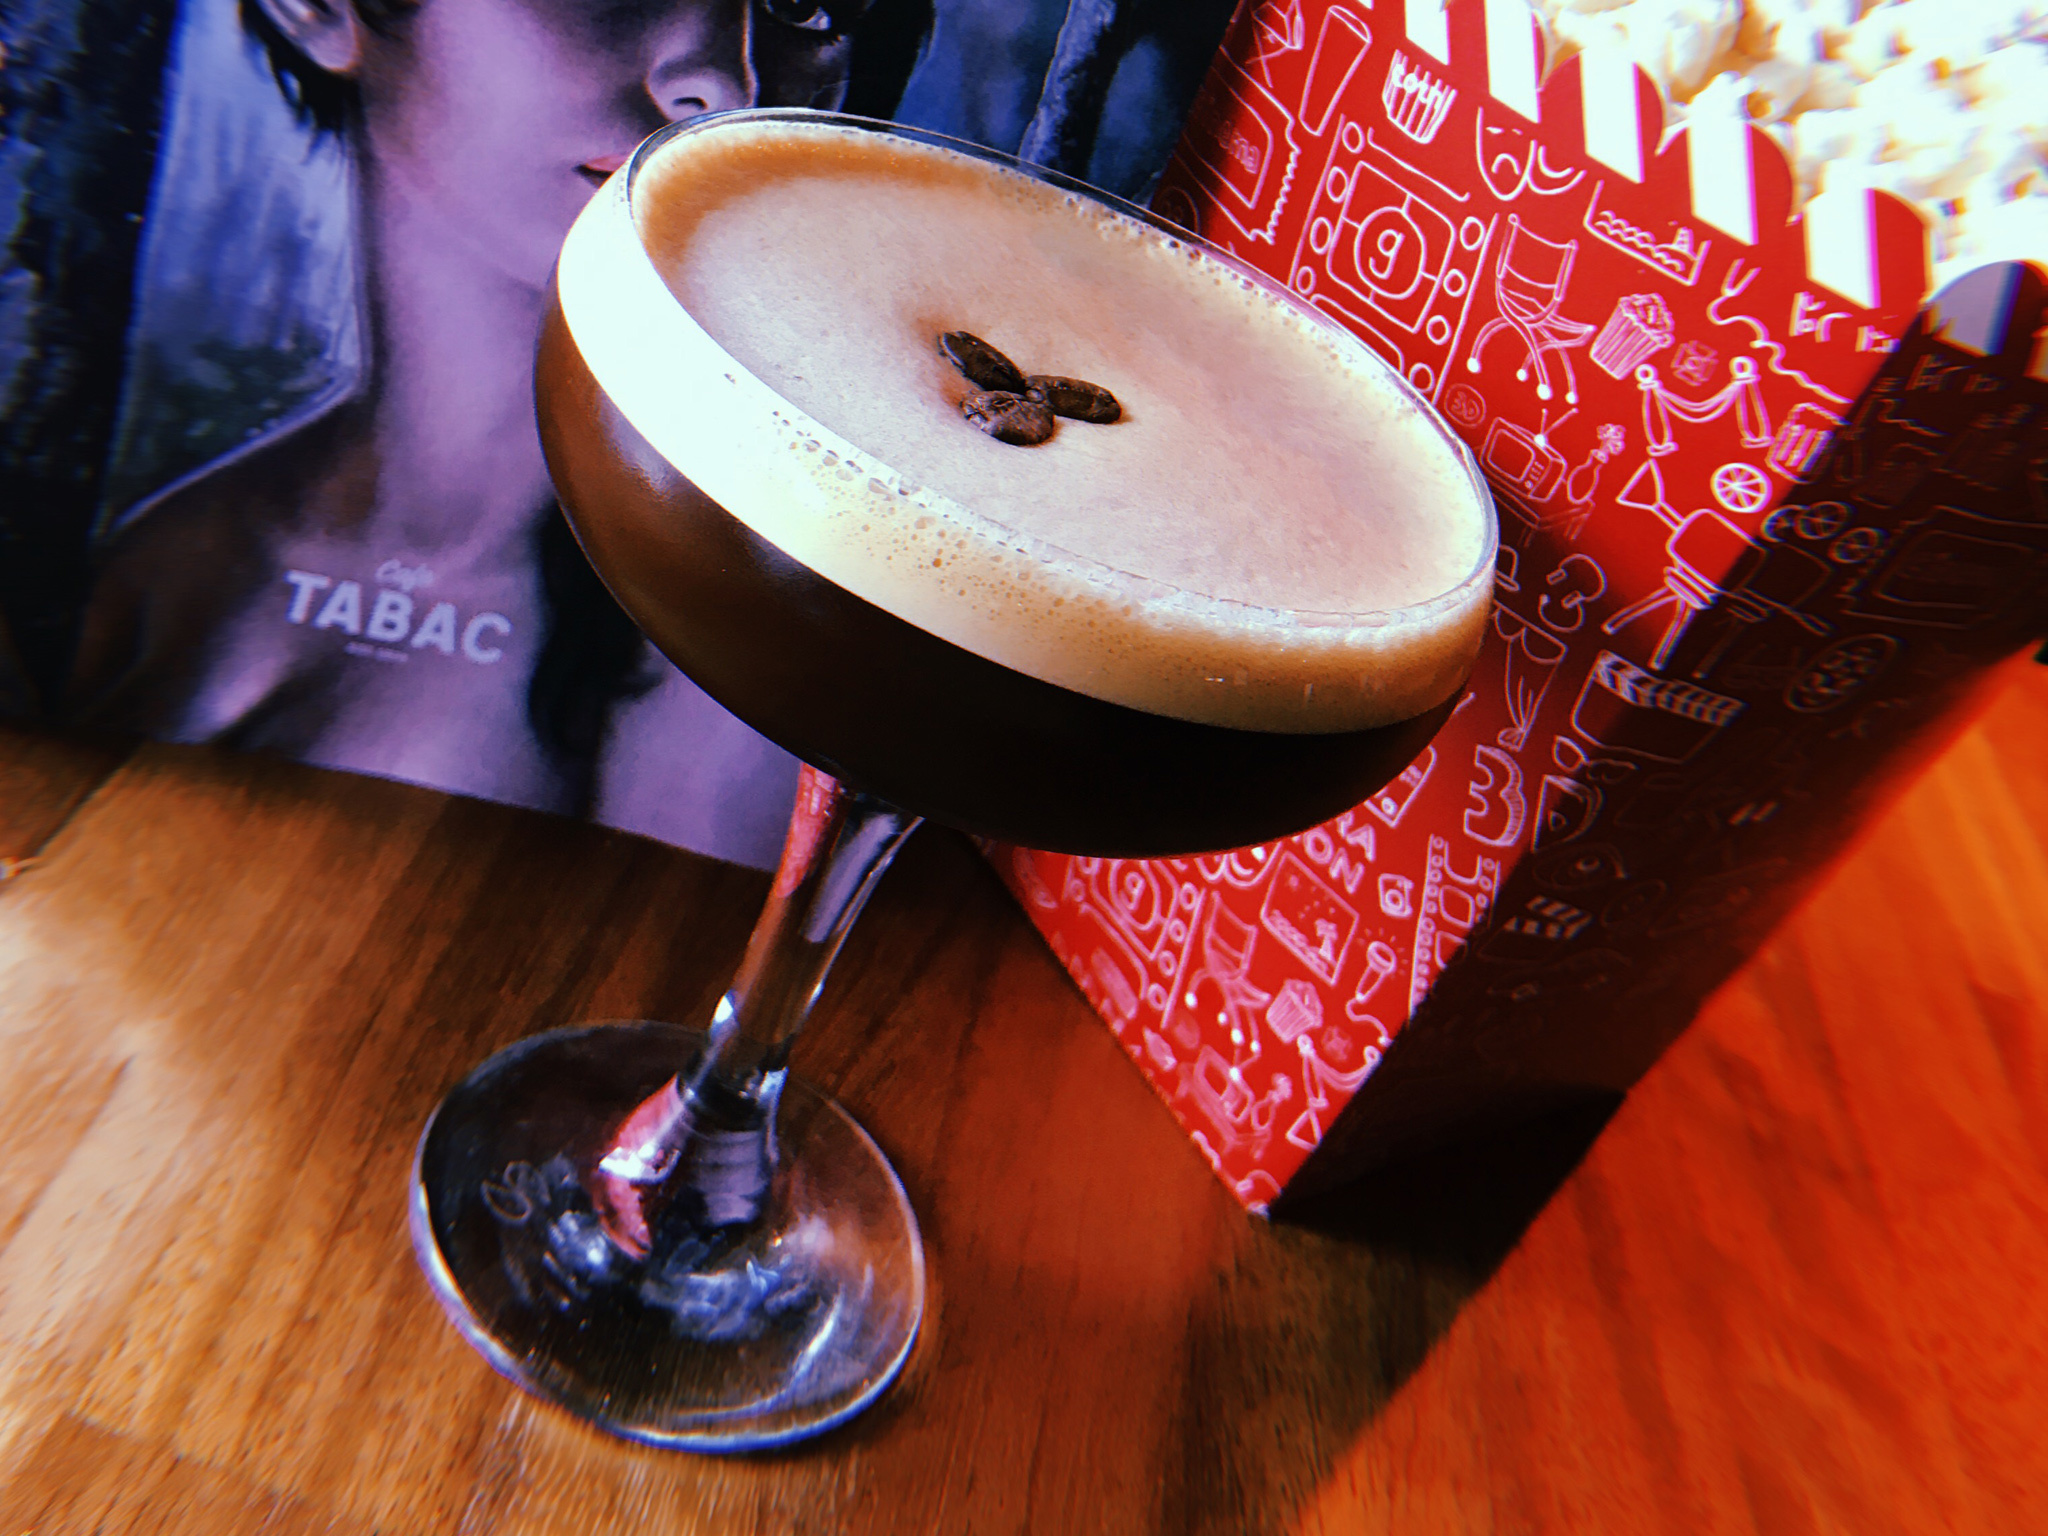 Café Tabac in Liverpool